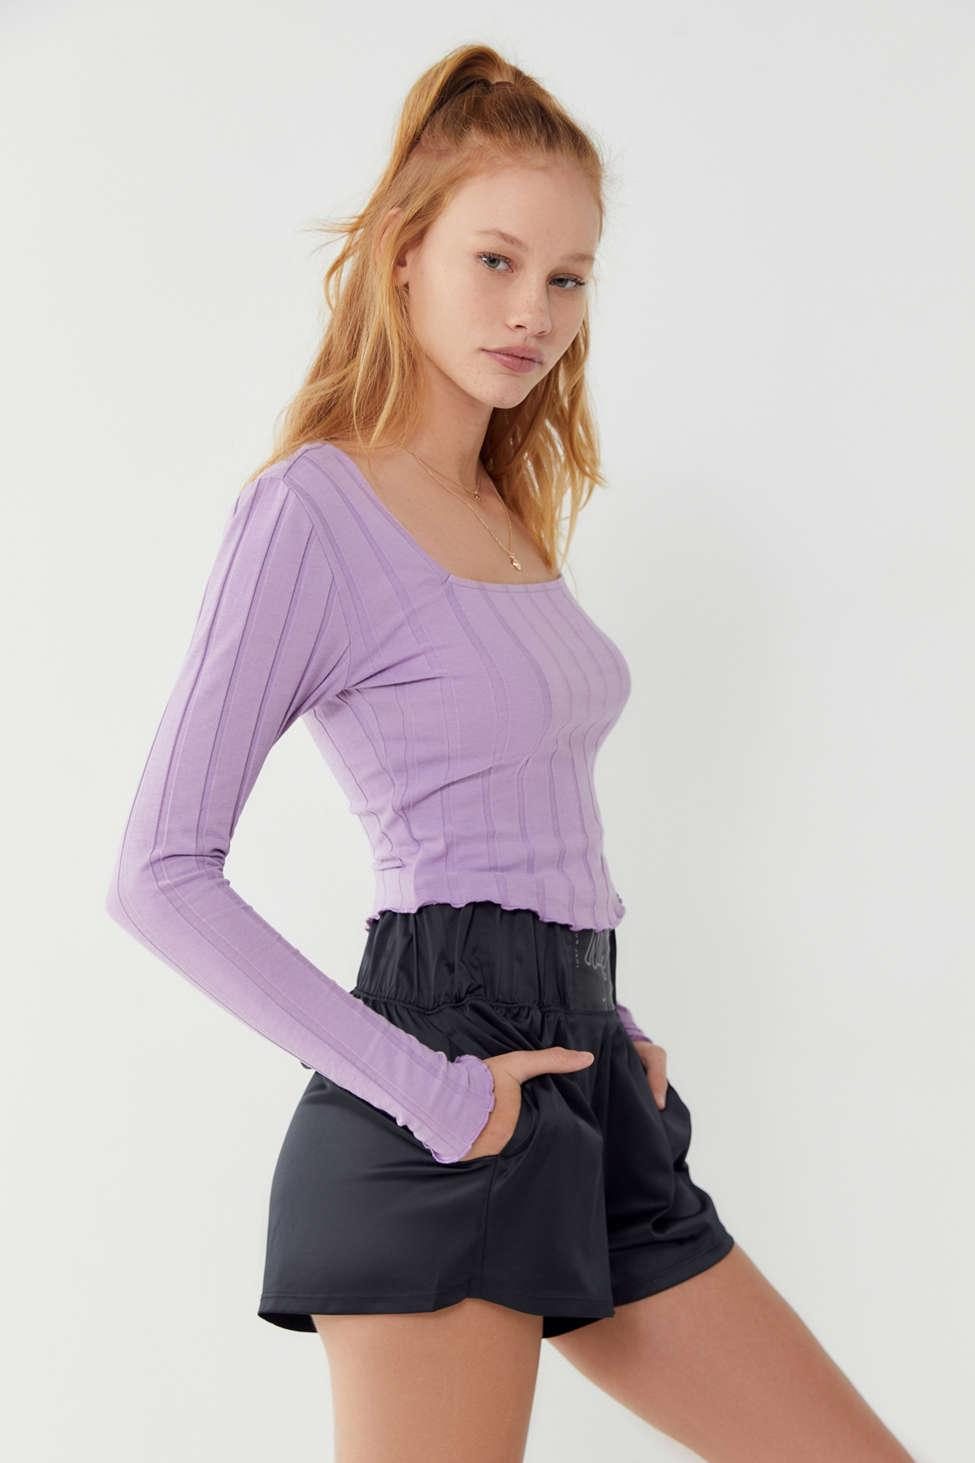 d0ebbfb863 Lyst - Urban Outfitters Uo Mabel Lettuce-edge Square Neck Top in ...